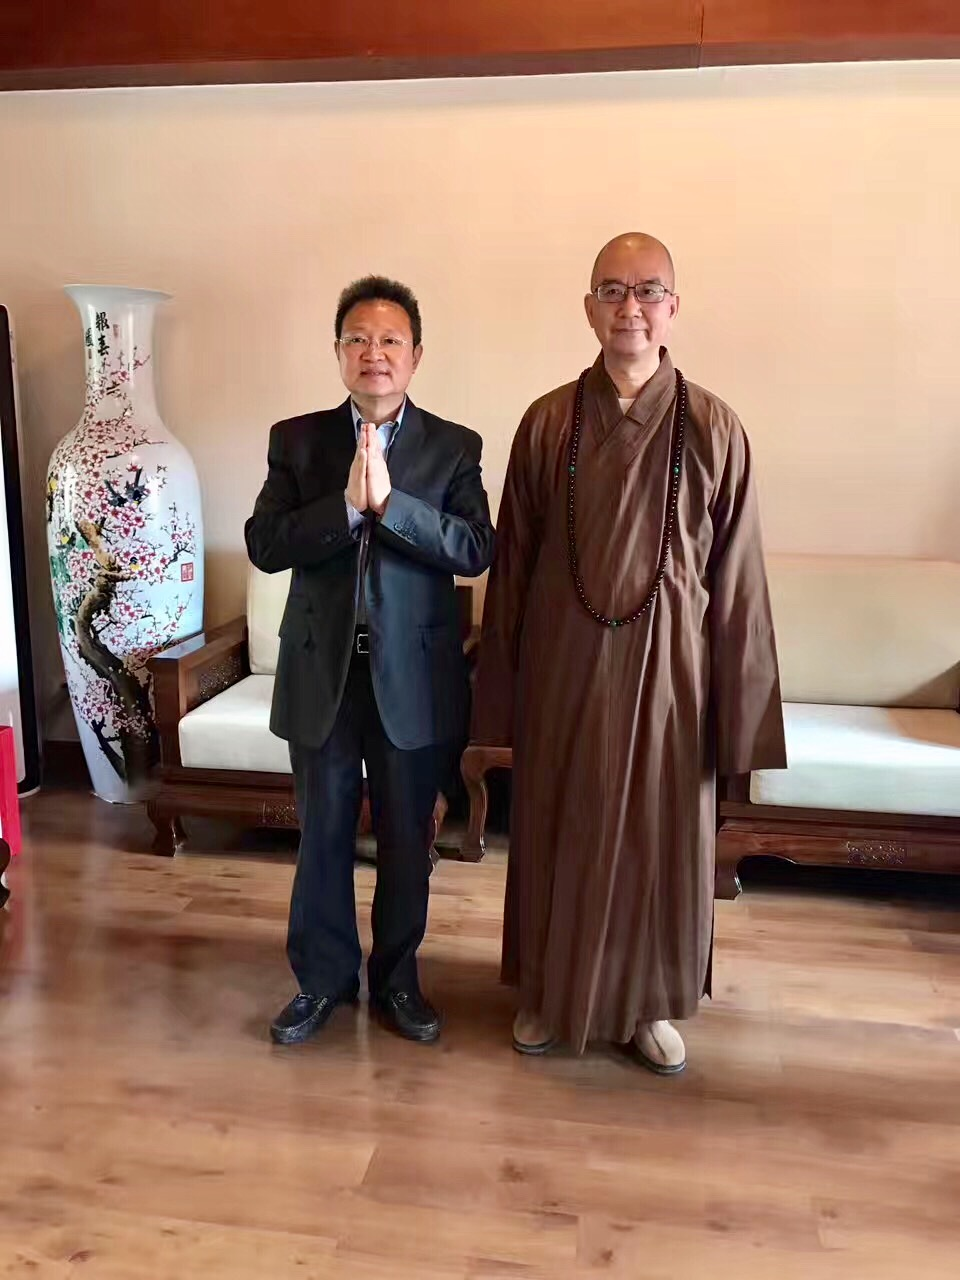 Mr. Shi (left) with the chairman of Chinese Buddhist Association, Venerable Xuecheng Shi